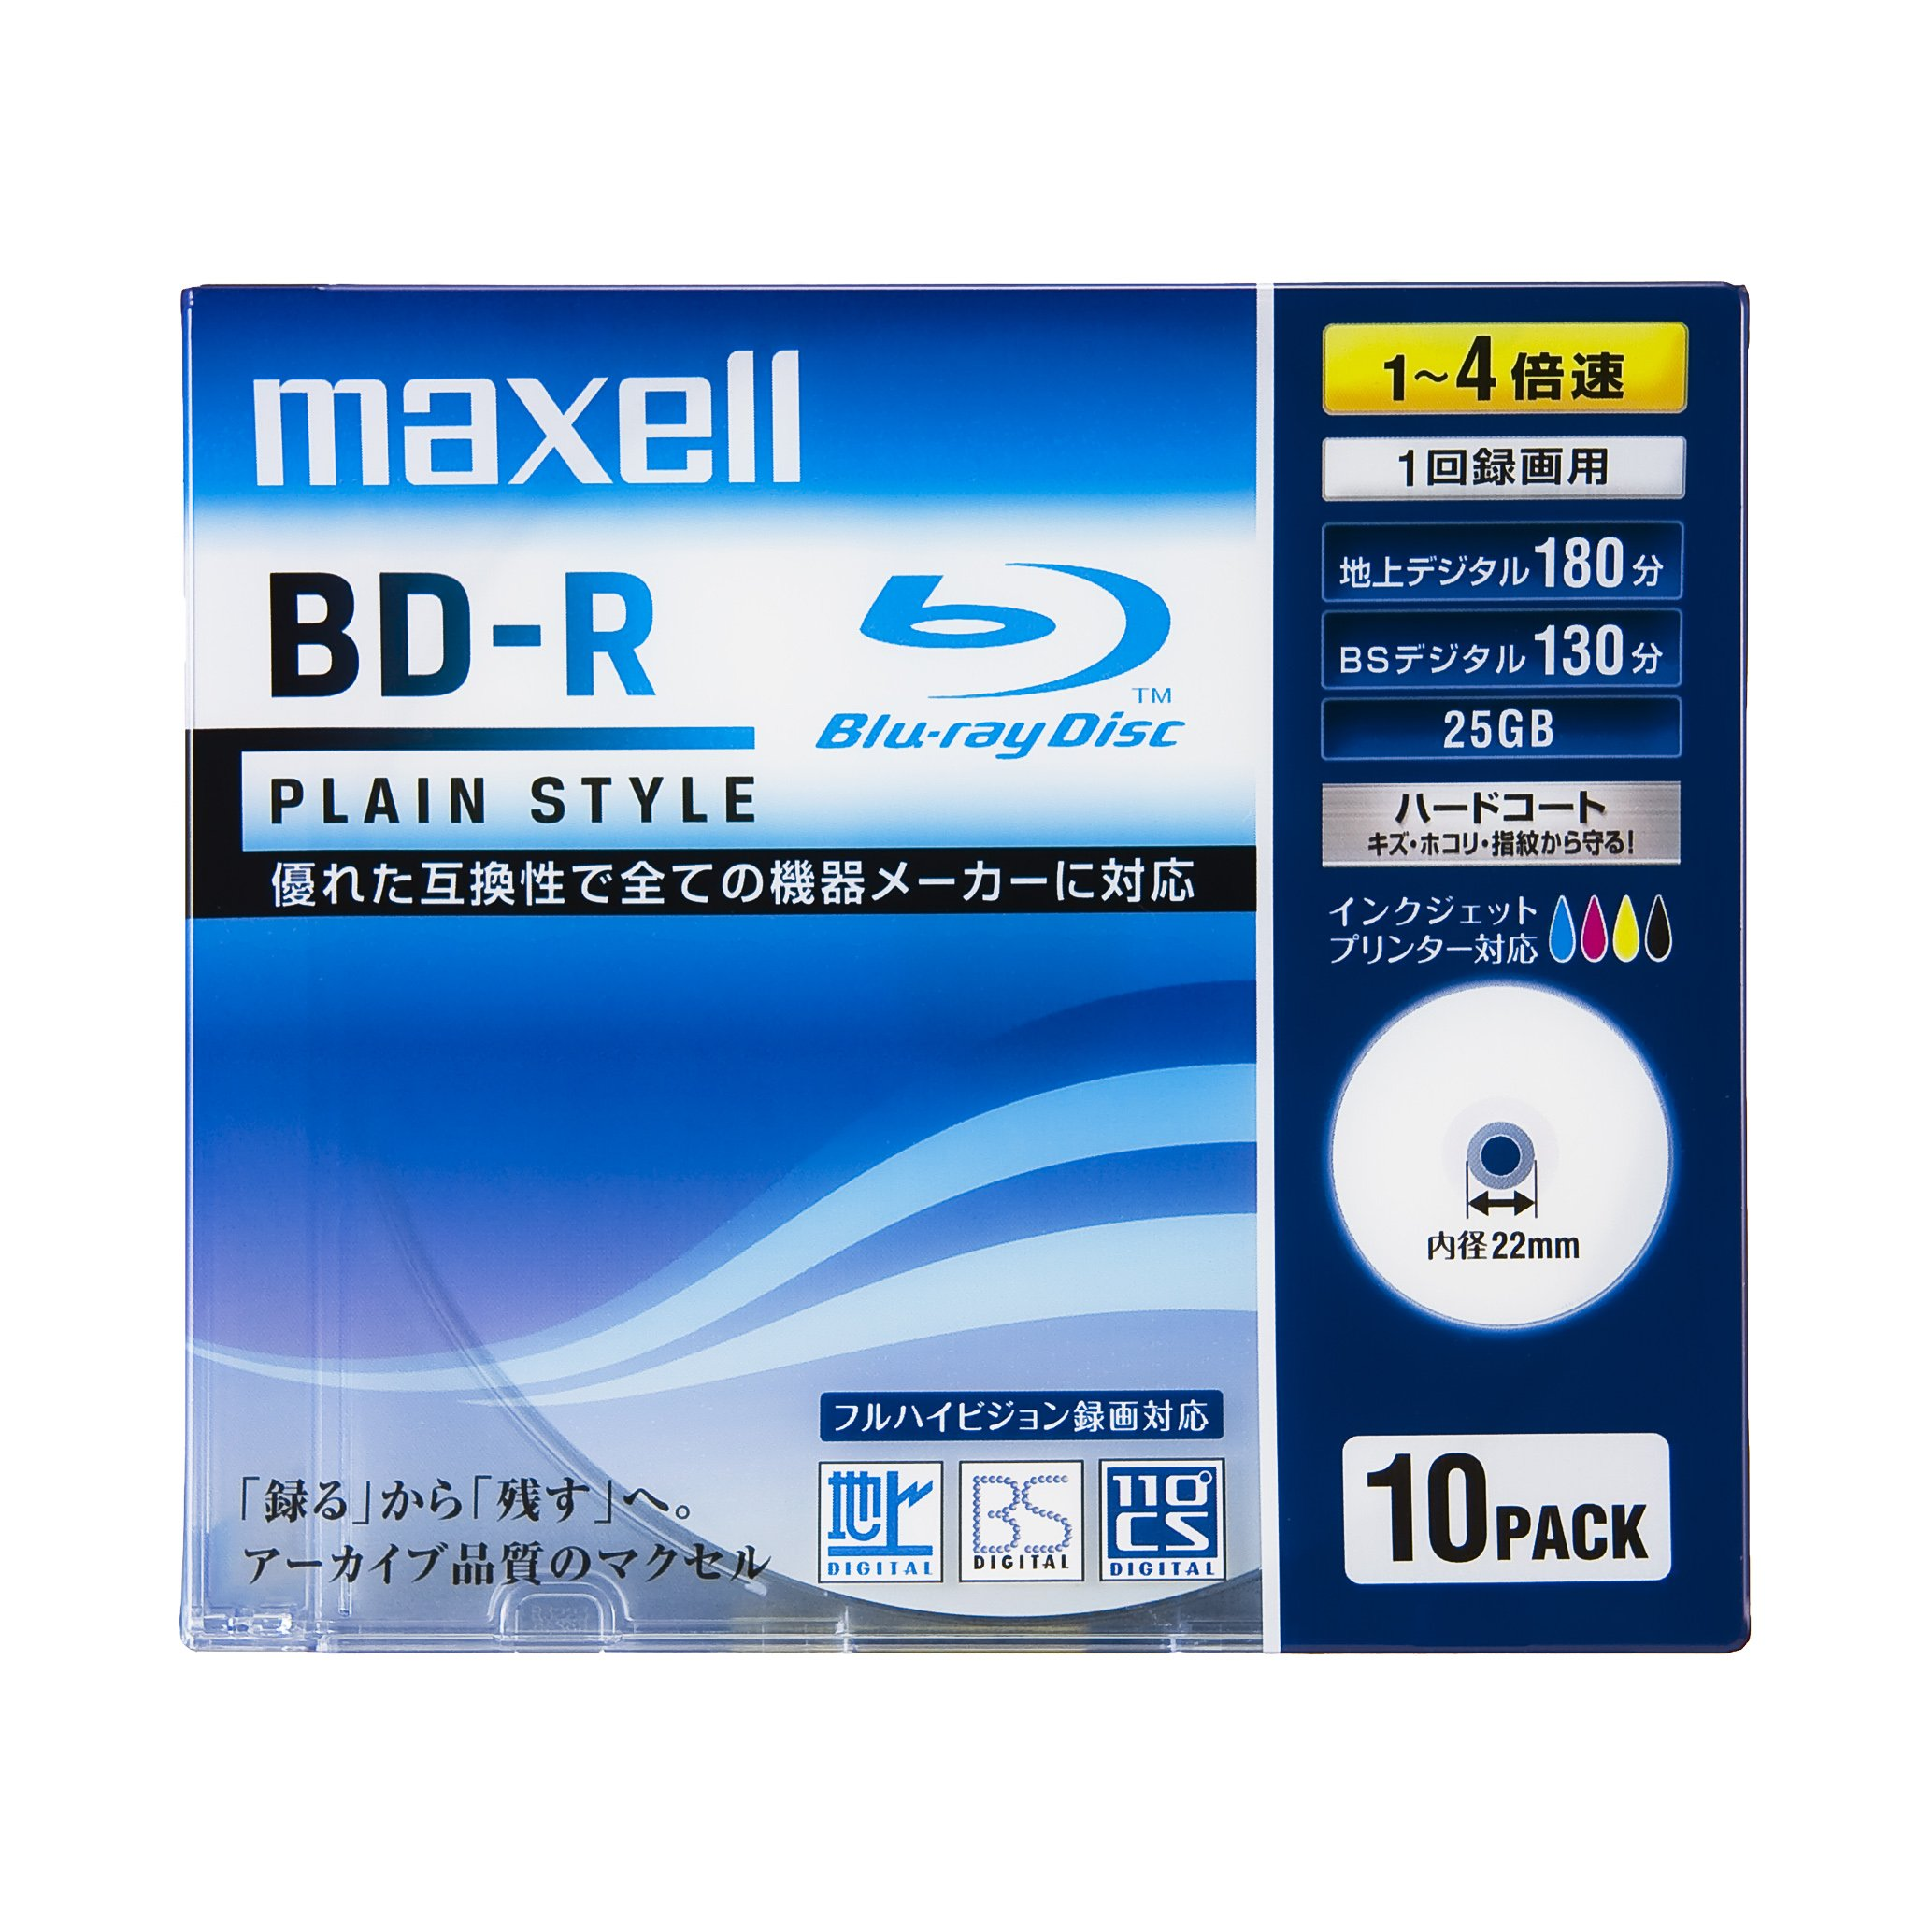 MAXELL Blue-ray BD-R Disk | 25GB 4x Speed 10 Pack - Plain Style - White Wide Area Ink-jet Printable Label (Japan Import) by Maxell